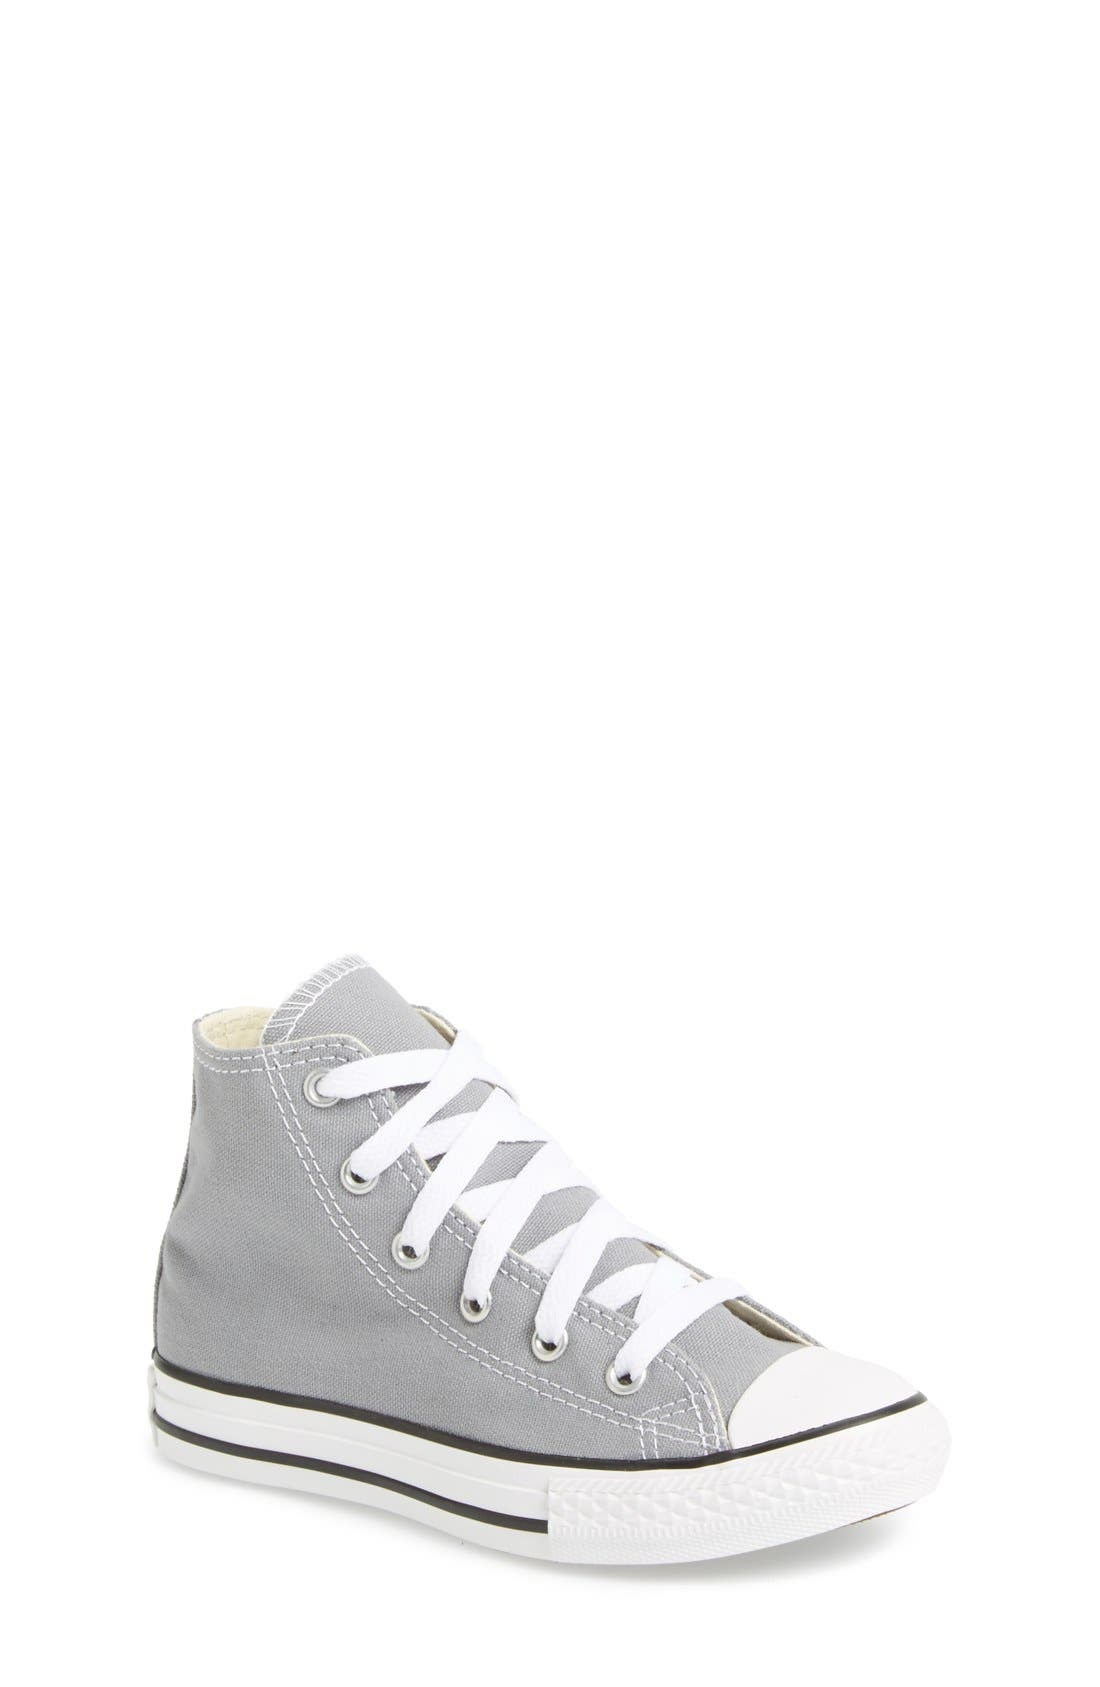 Alternate Image 1 Selected - Converse Chuck Taylor® All Star® High Top Sneaker (Toddler & Little Kid)